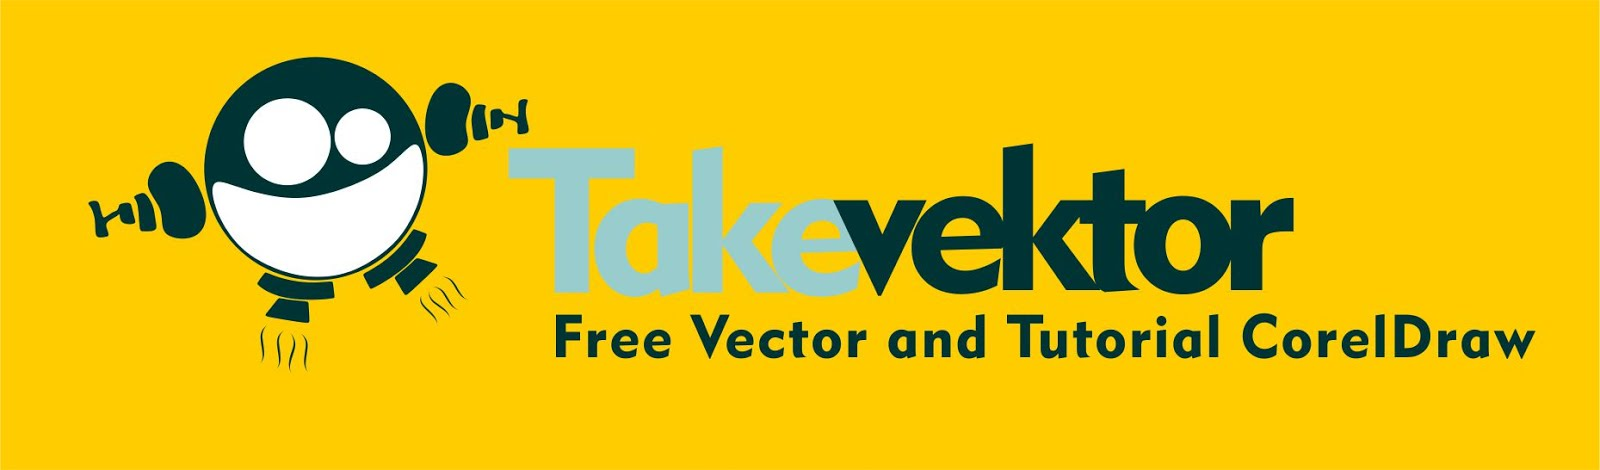 TAKEVEKTOR | Free Vector and Tutorials Coreldraw